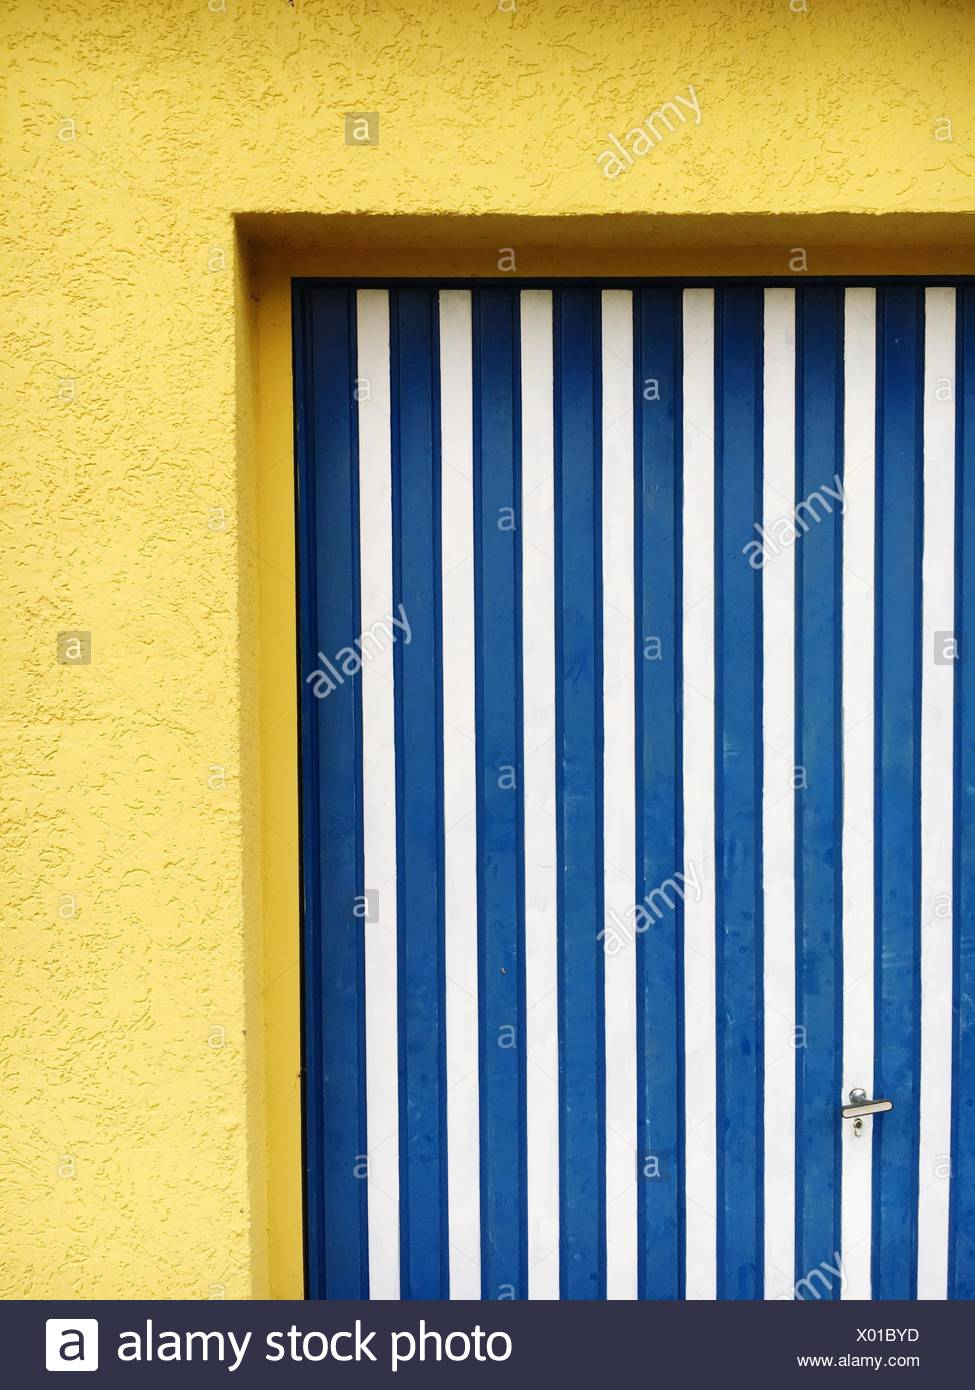 Porte jaune à rayures bleu sur House Photo Stock